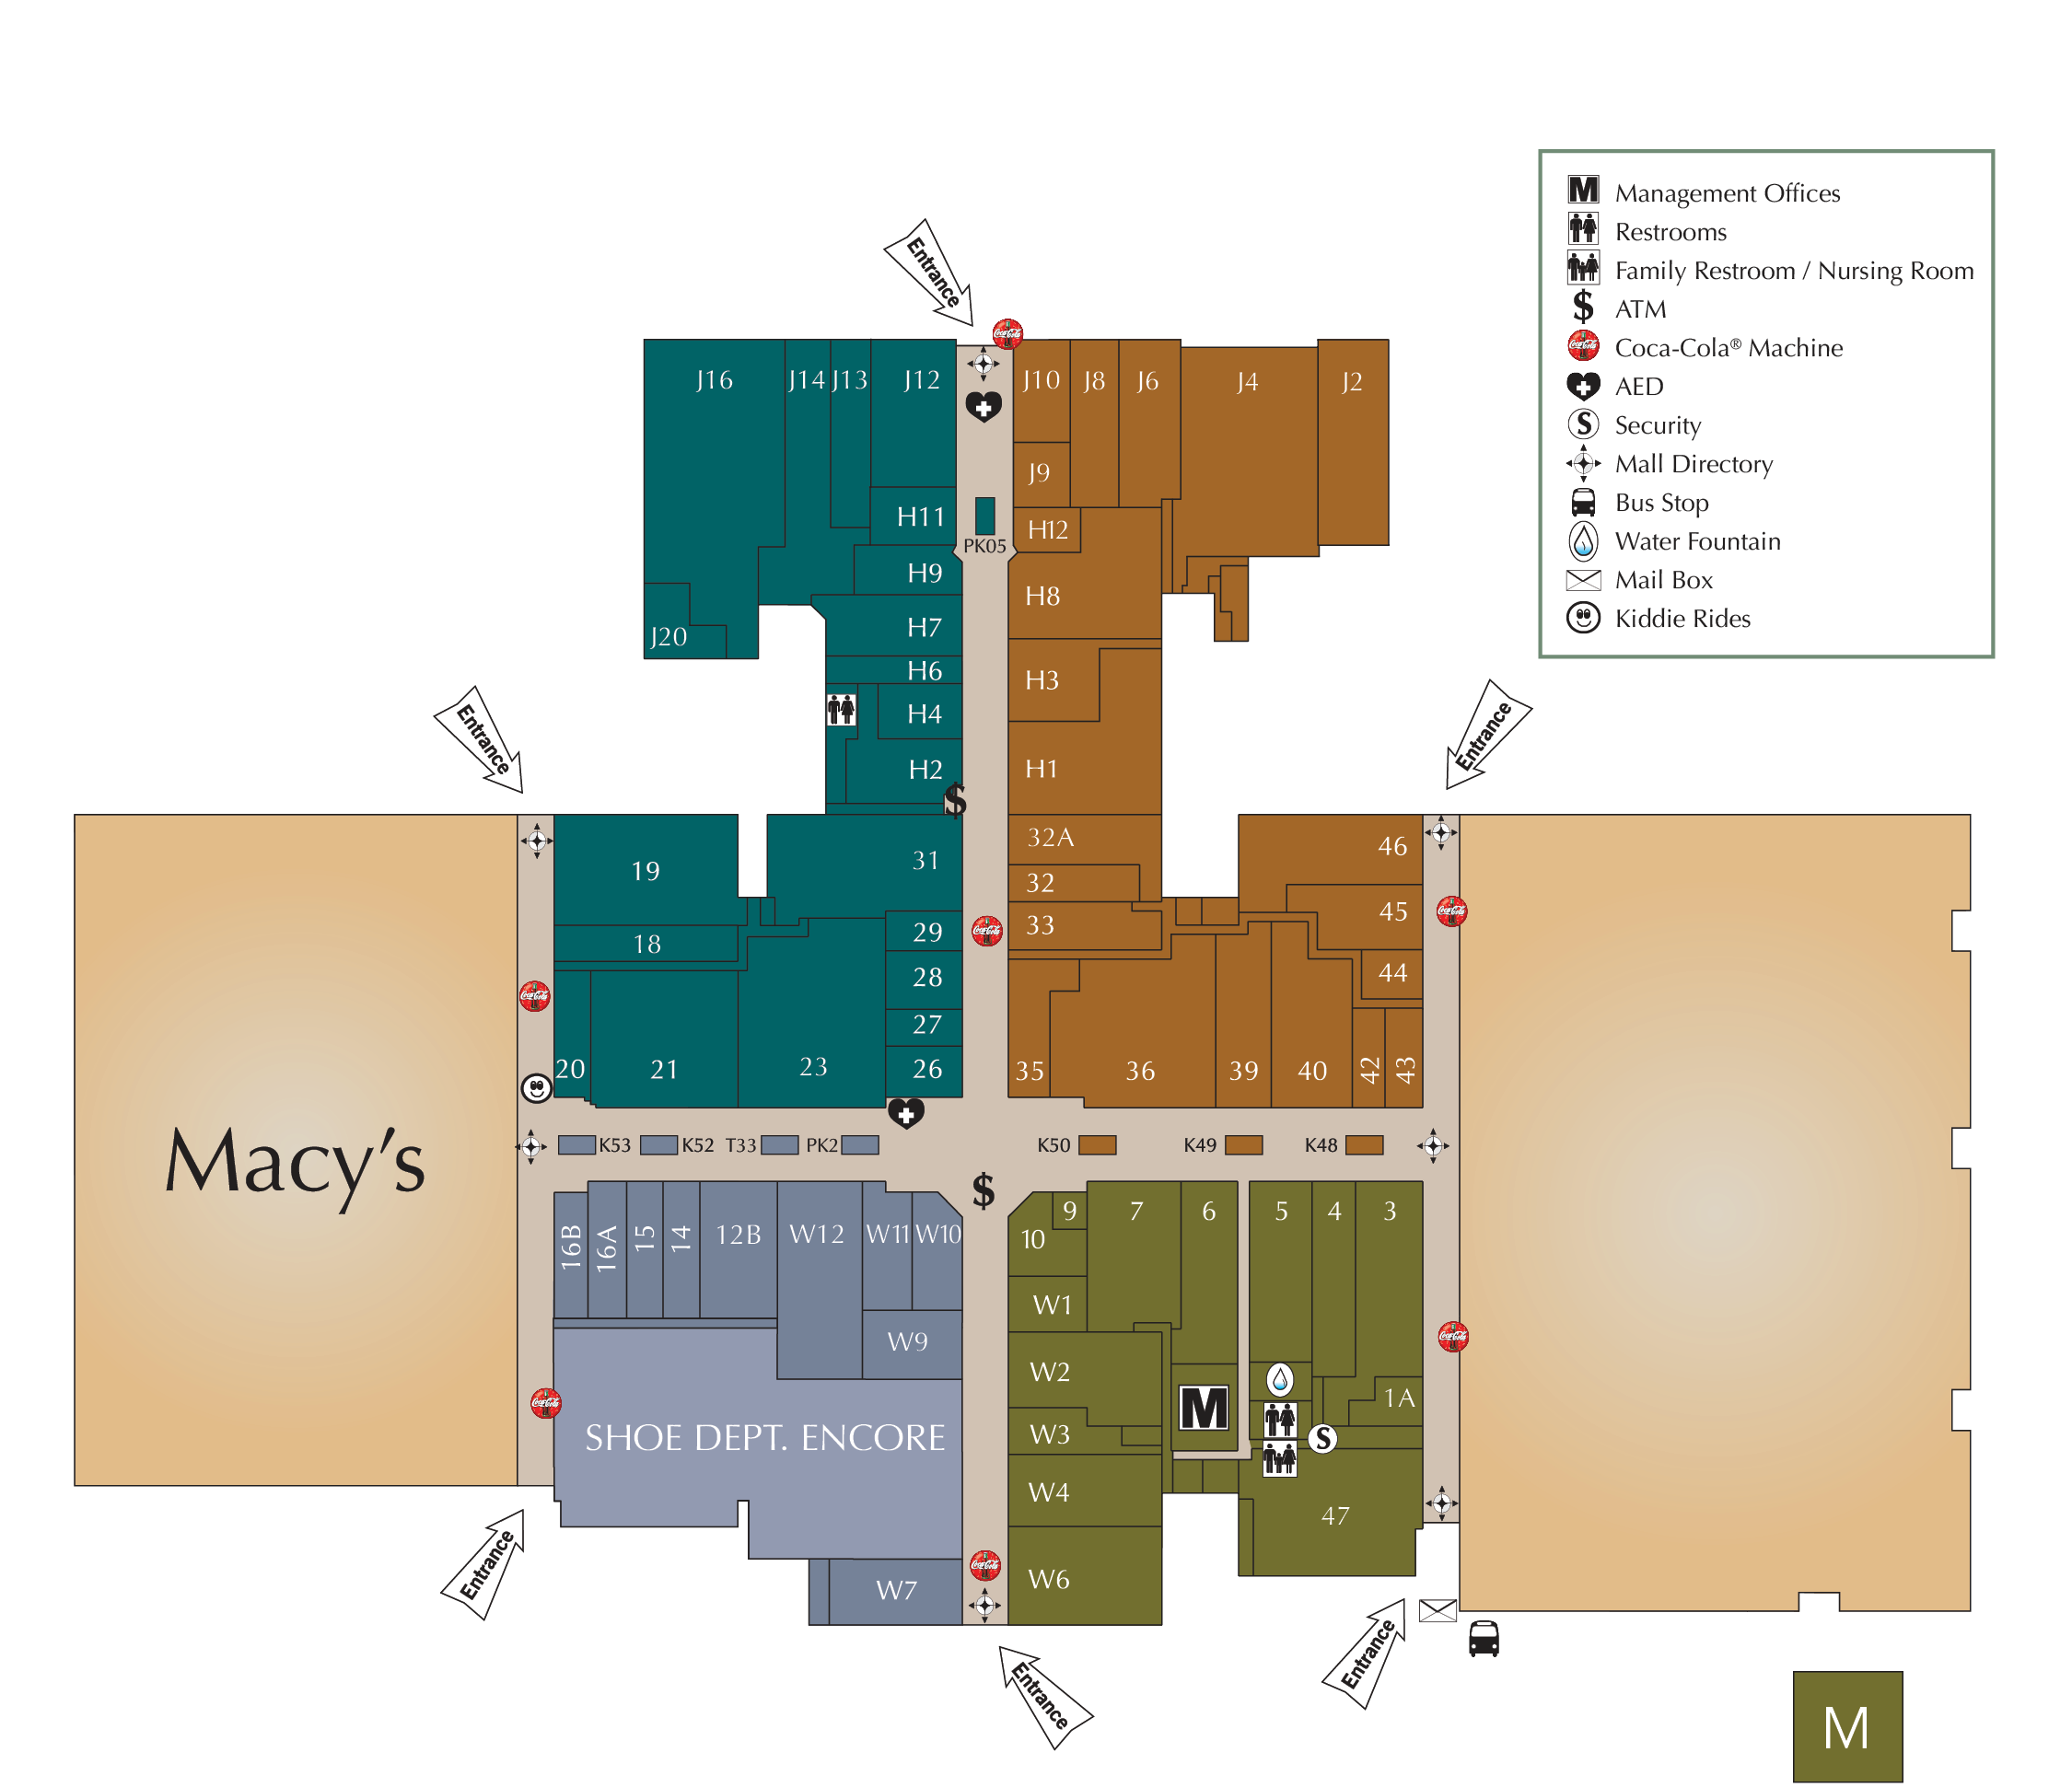 Harford Mall directory map